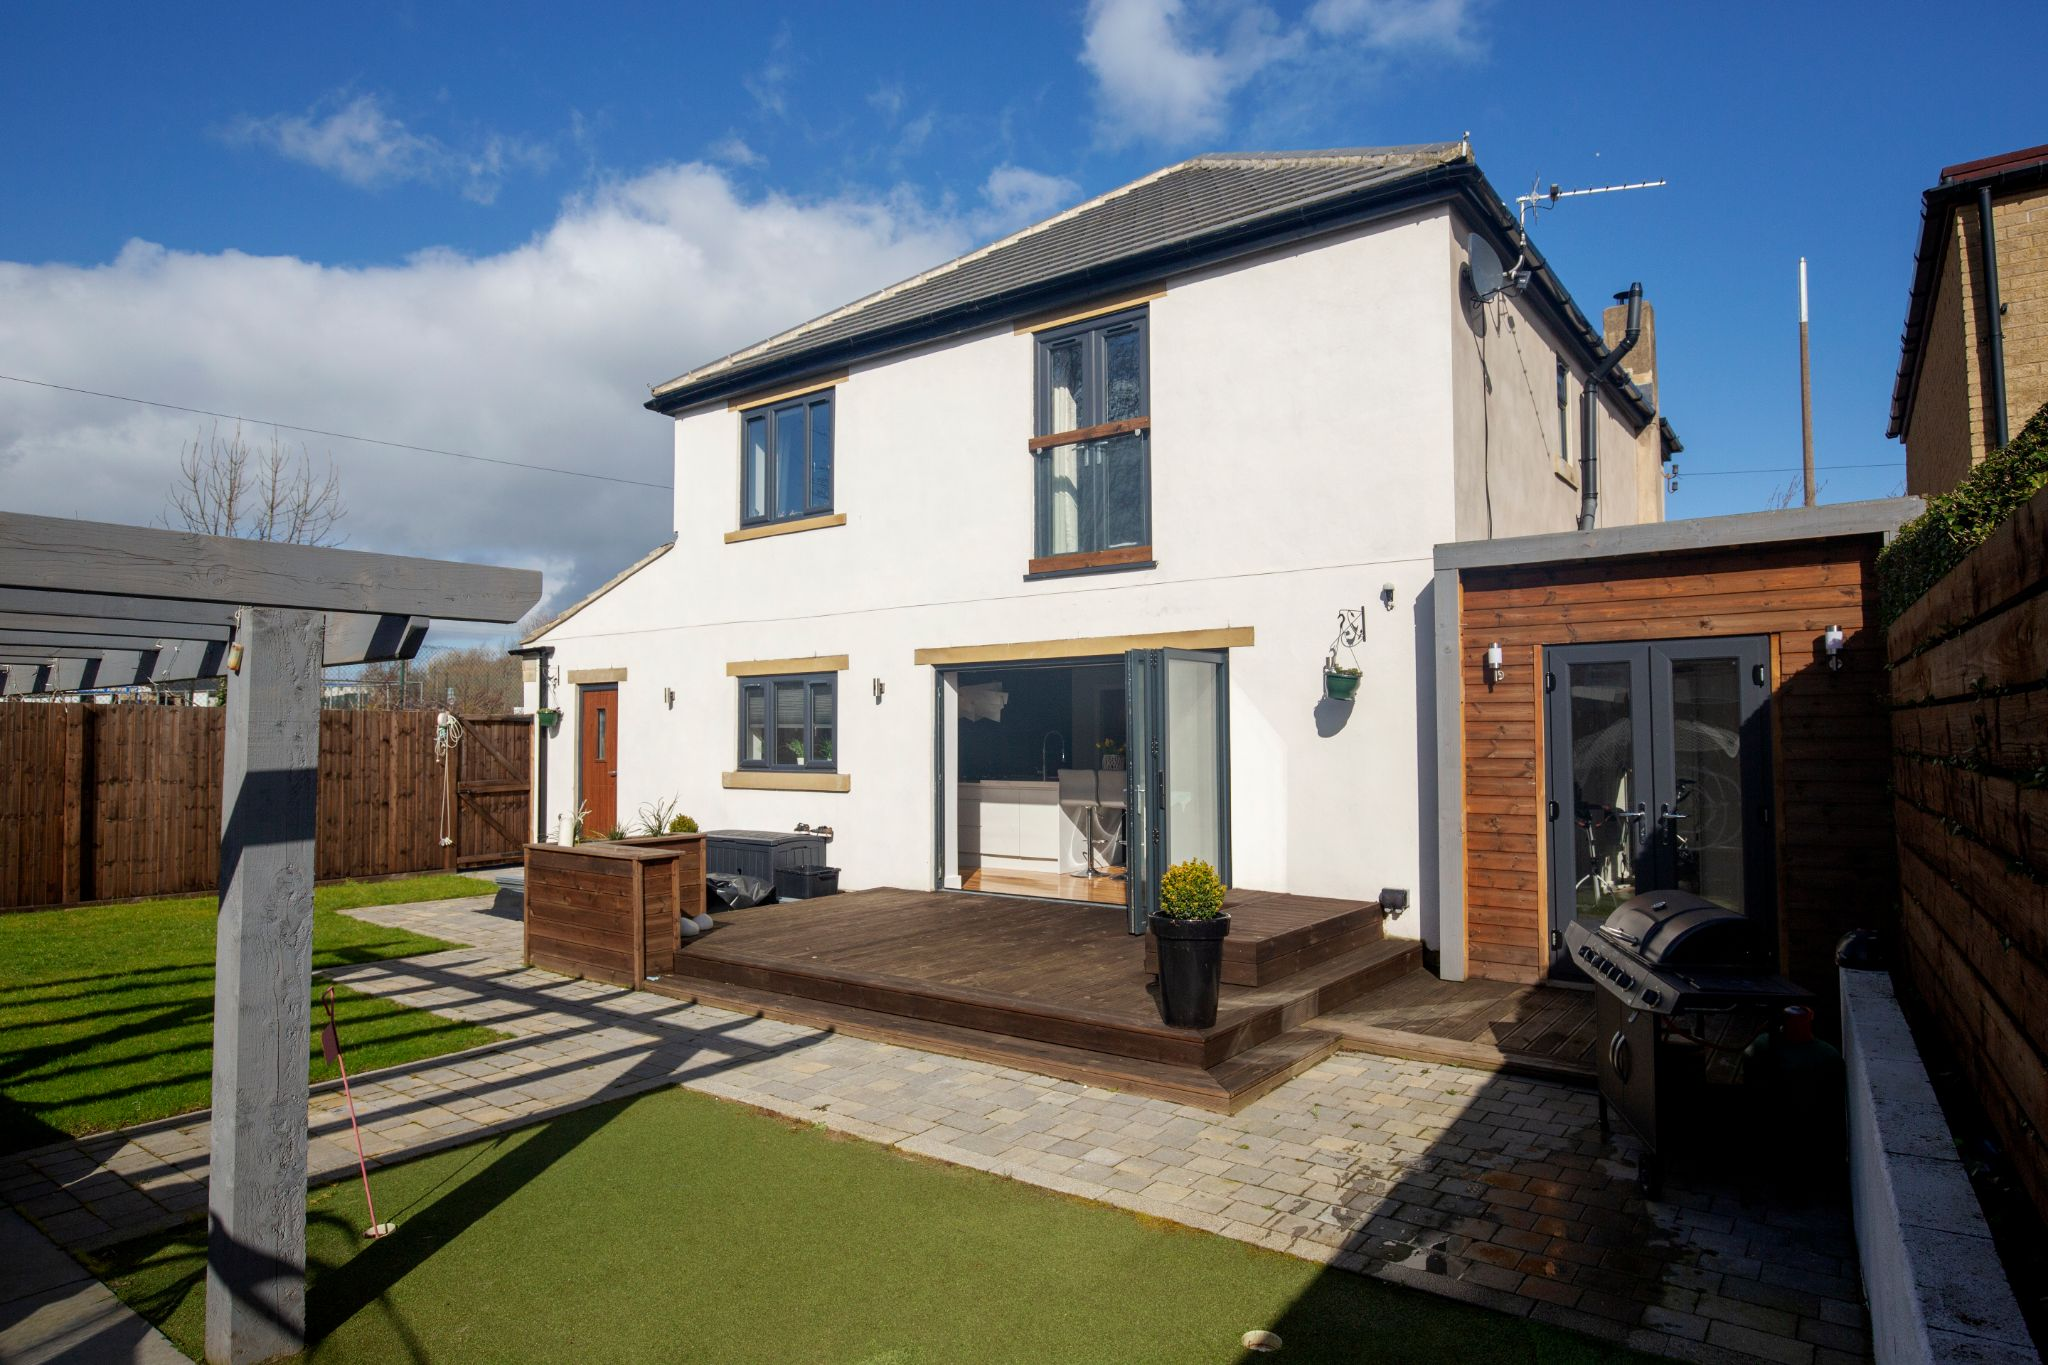 4 bedroom detached house For Sale in Brighouse - Rear elevation and garden